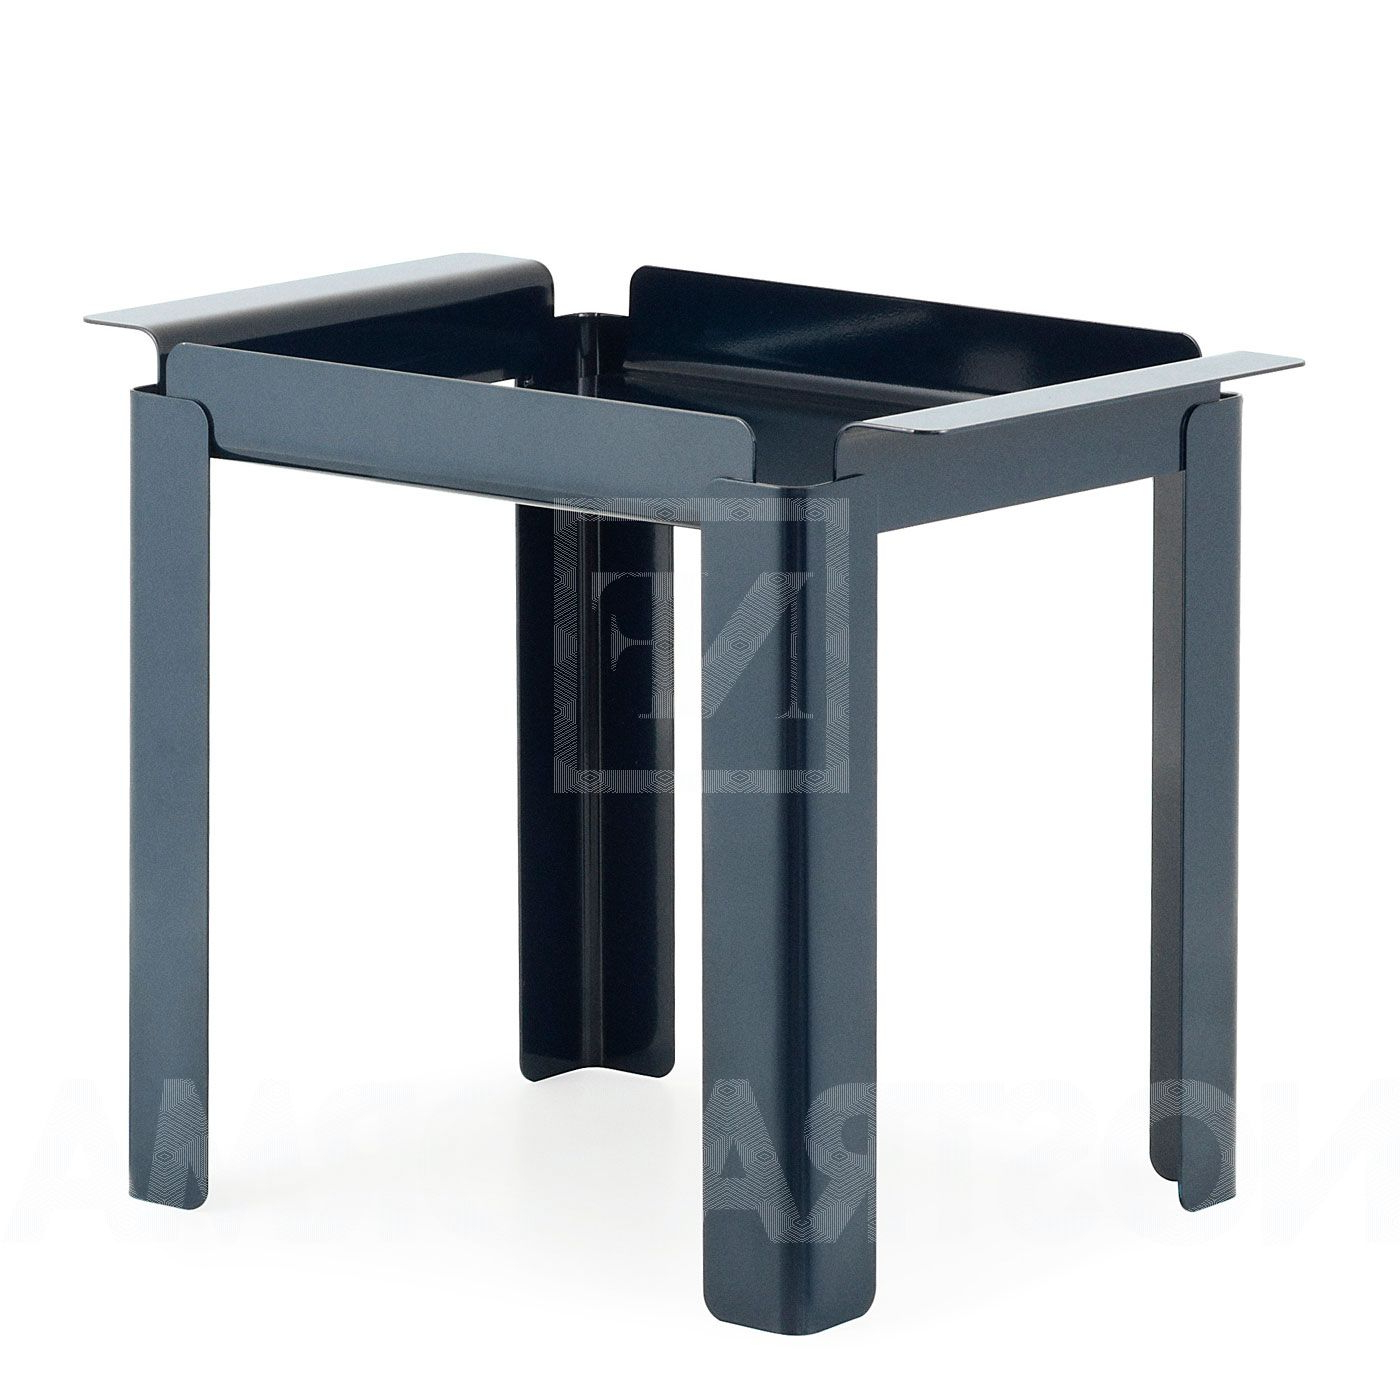 Coffee Table For Small Es – Coffee Drinker For Newest Kai Small Coffee Tables (View 3 of 20)